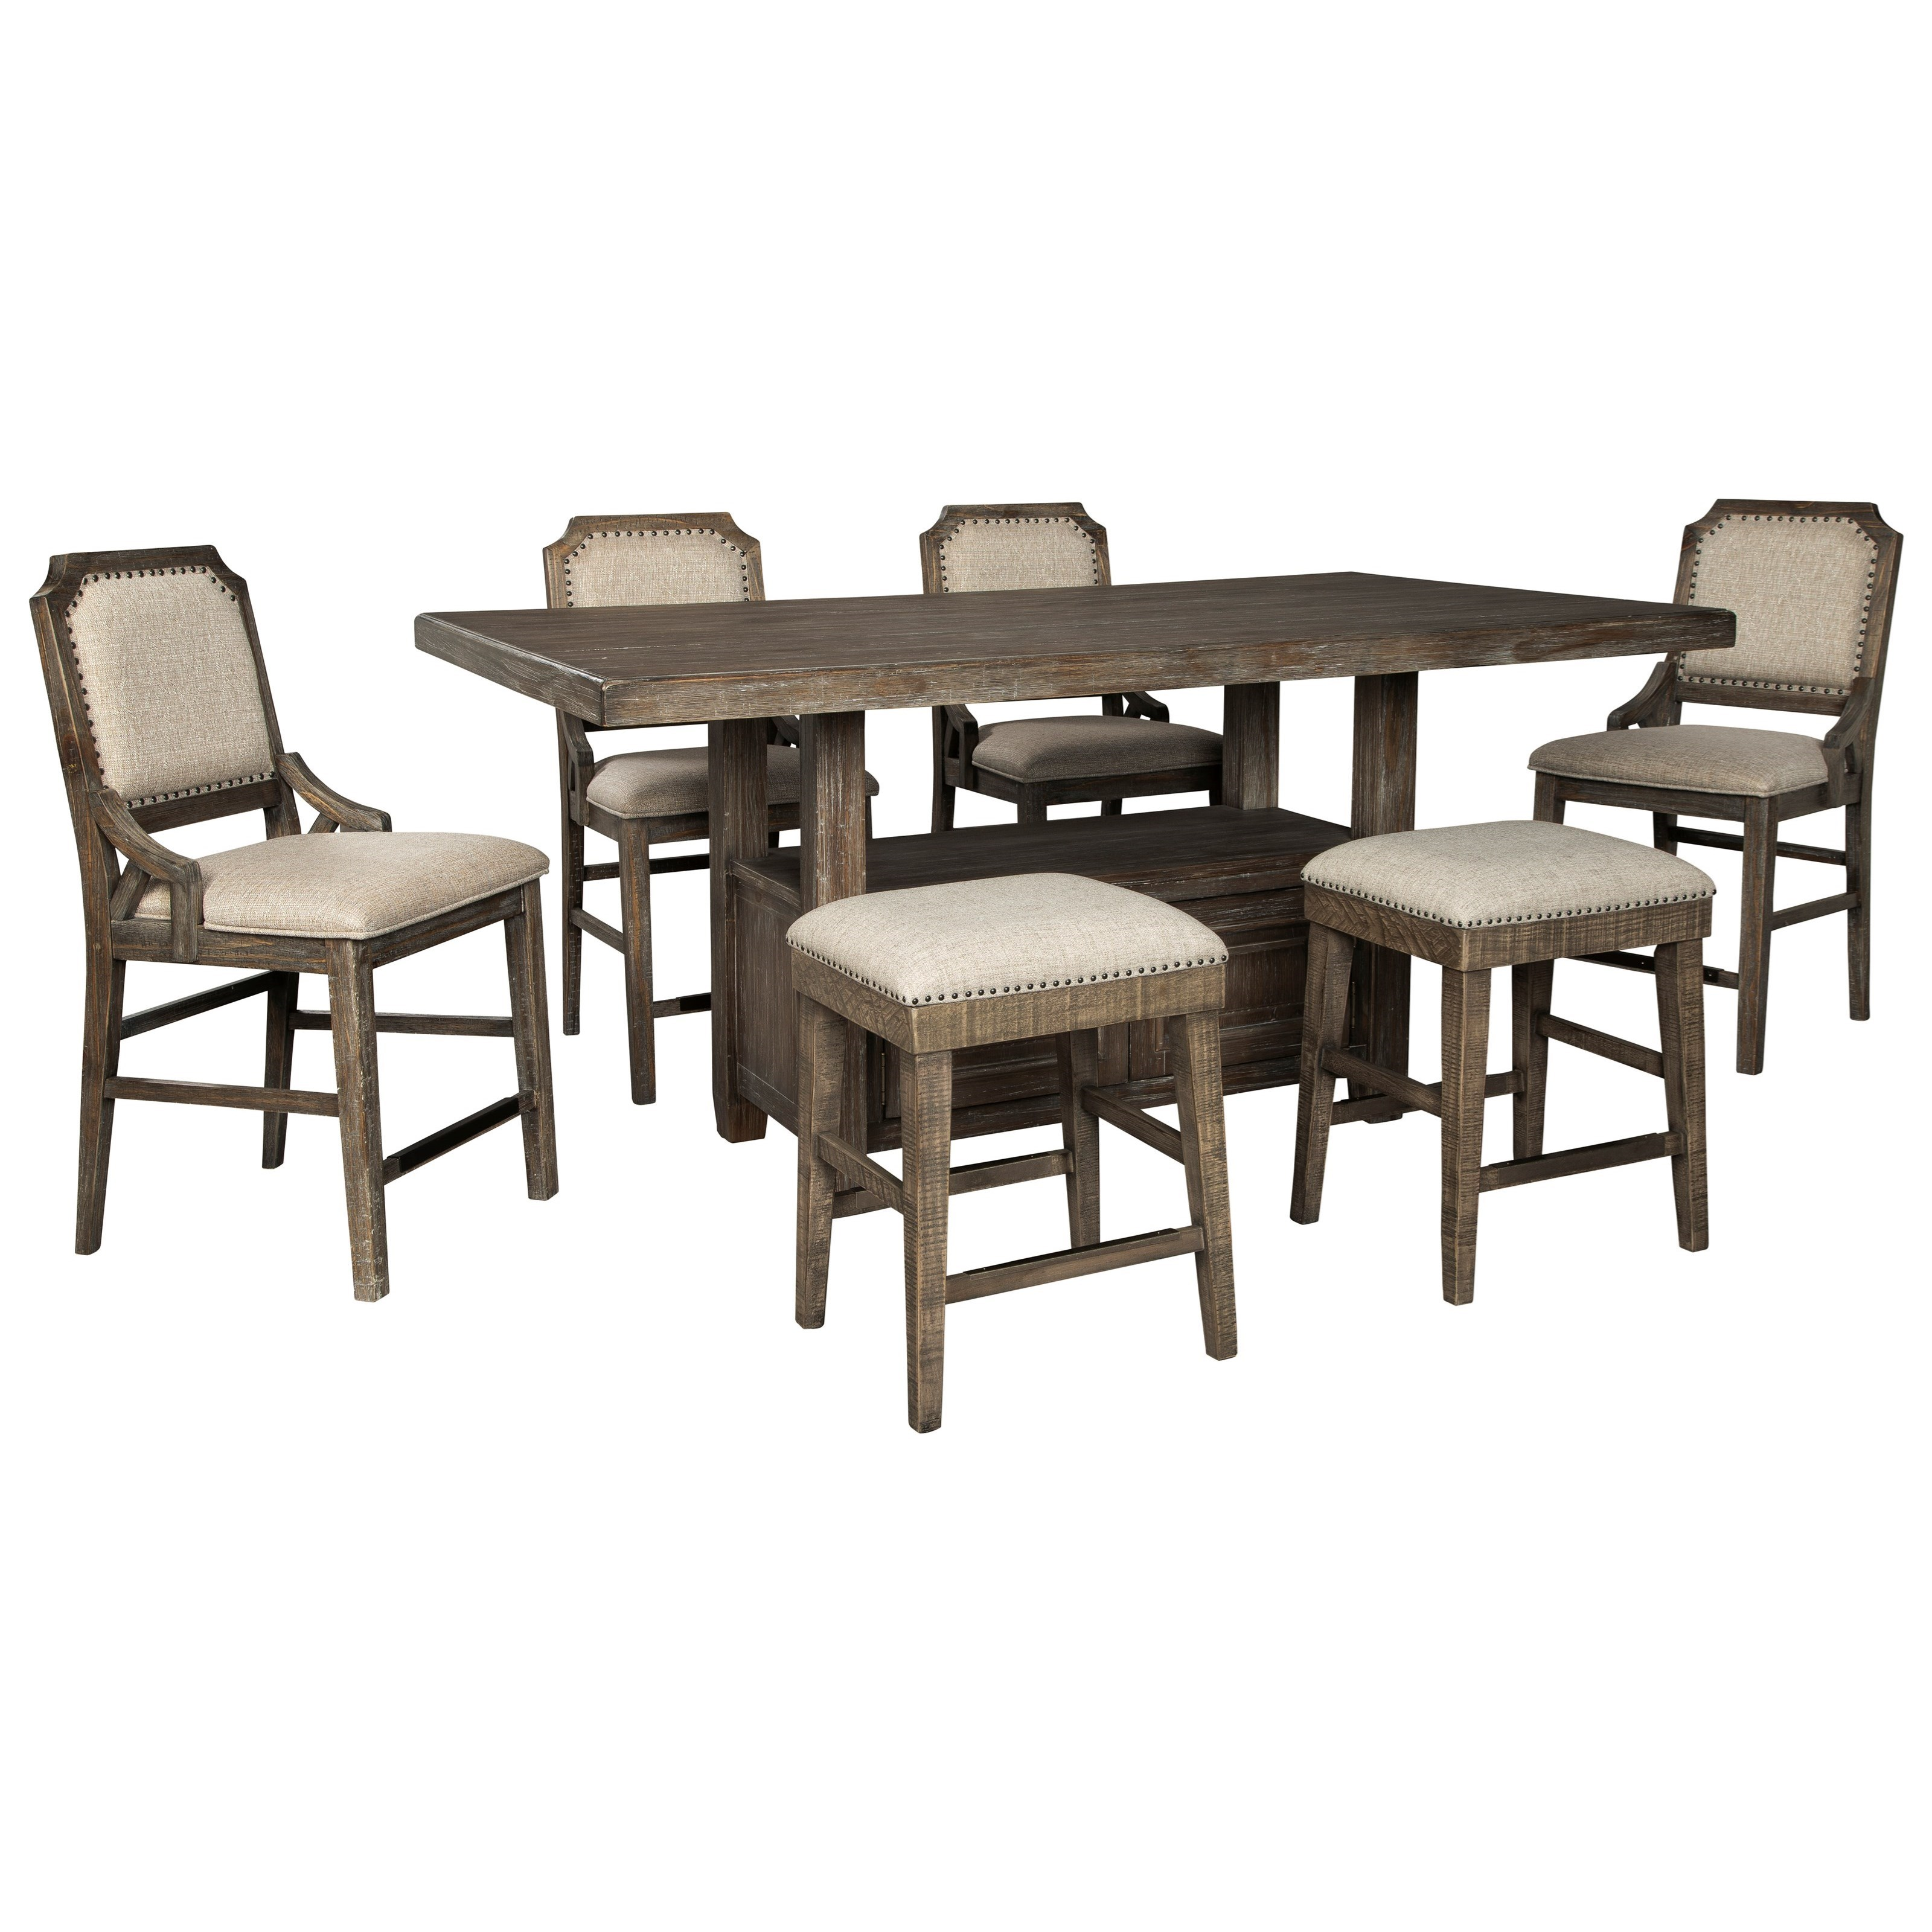 Wyndahl 7-Piece Rect. Counter Table w/ Storage Set by Signature Design by Ashley at Beck's Furniture